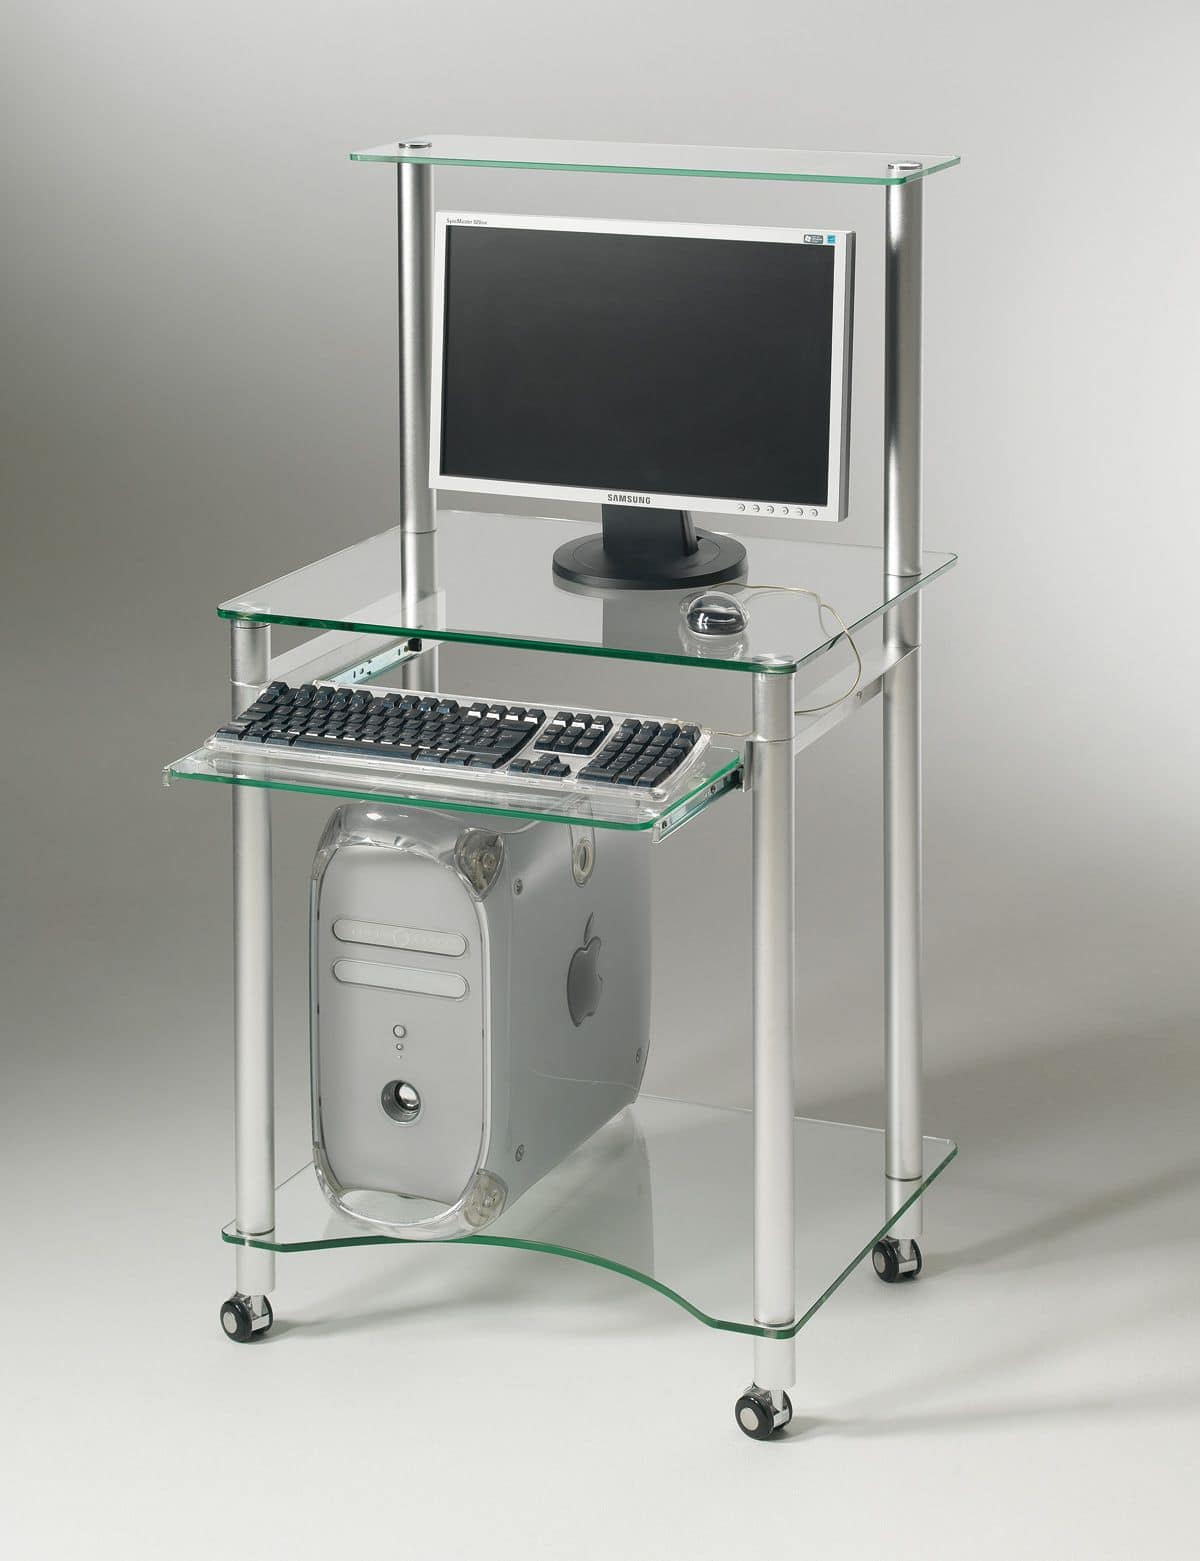 Compact PC02, PC desk equipped with castprs and retractable keyboard compartment